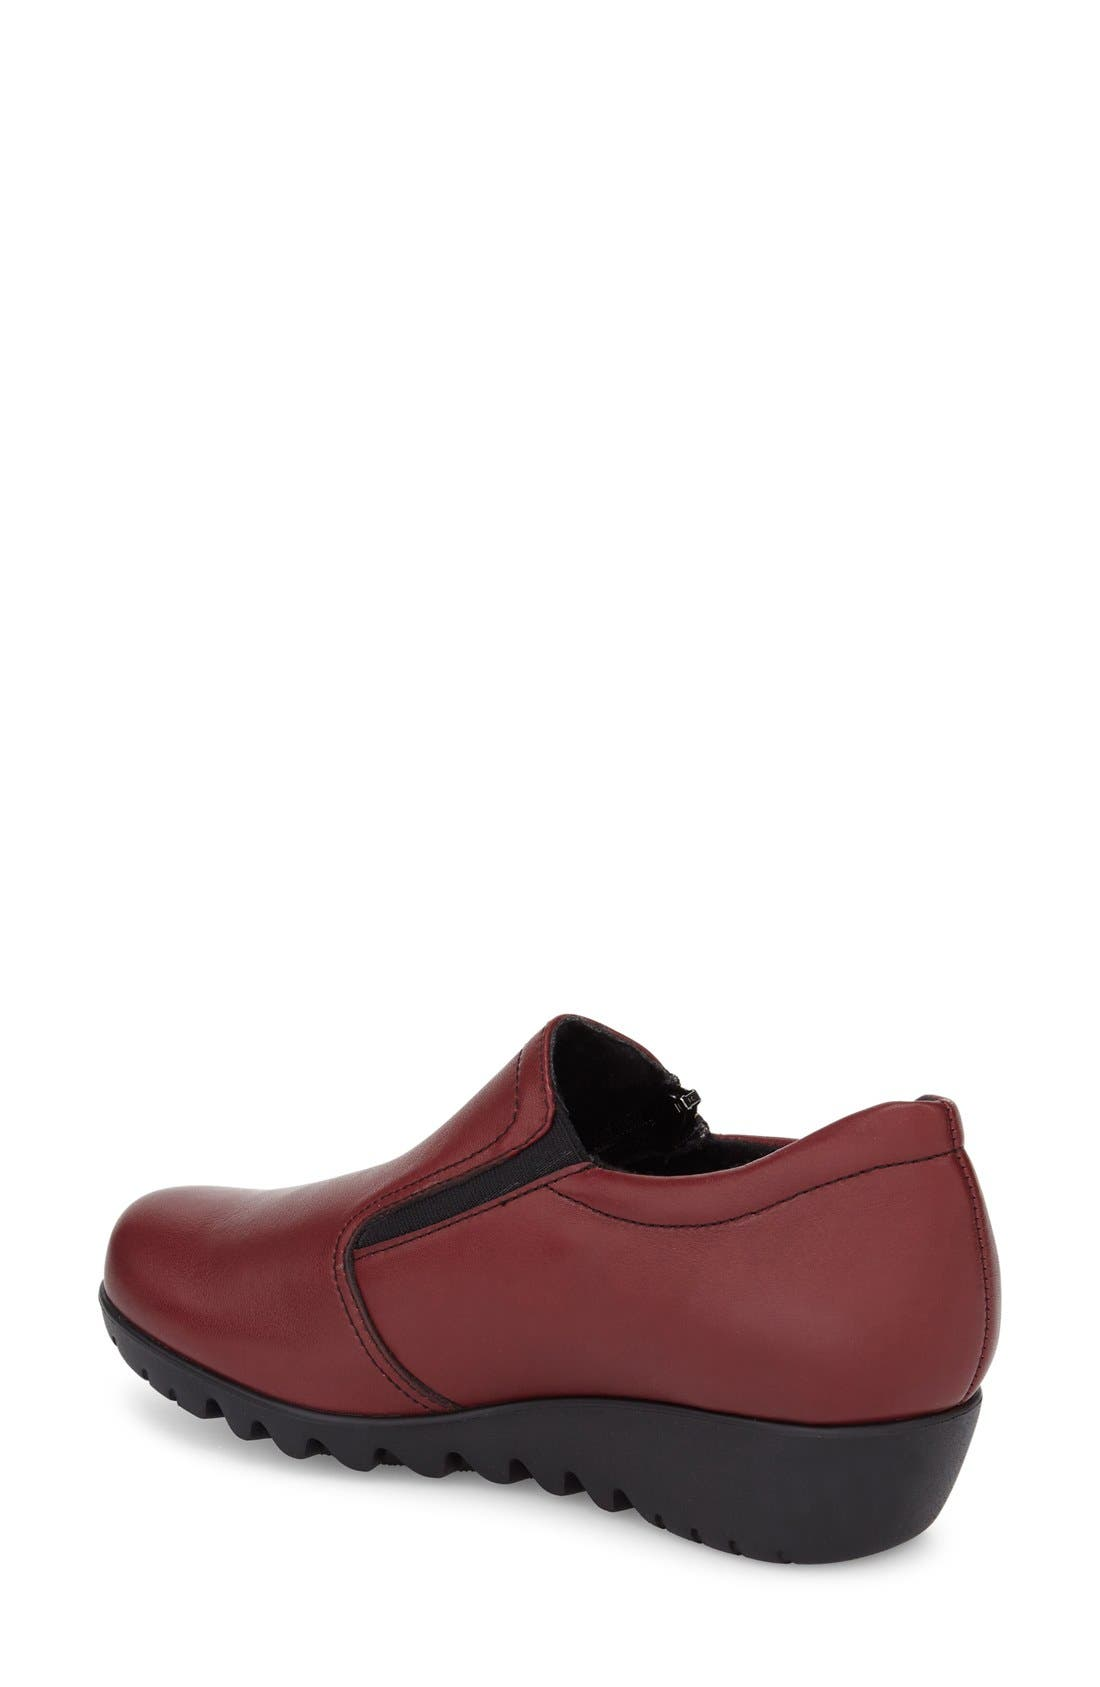 Napoli Zip Bootie,                             Alternate thumbnail 2, color,                             Red Leather